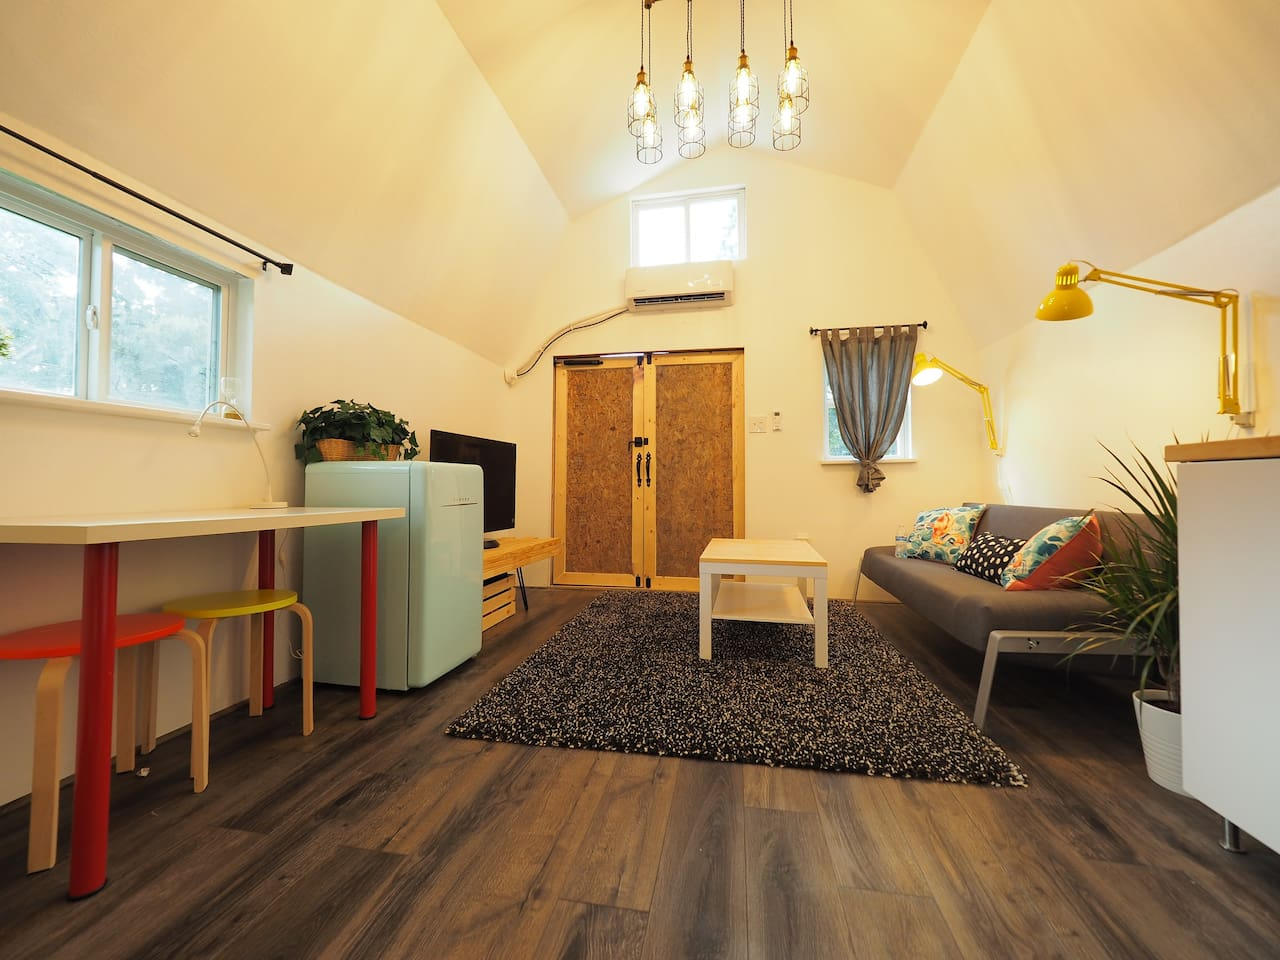 240 square feet of unique living space that you can not find anywhere